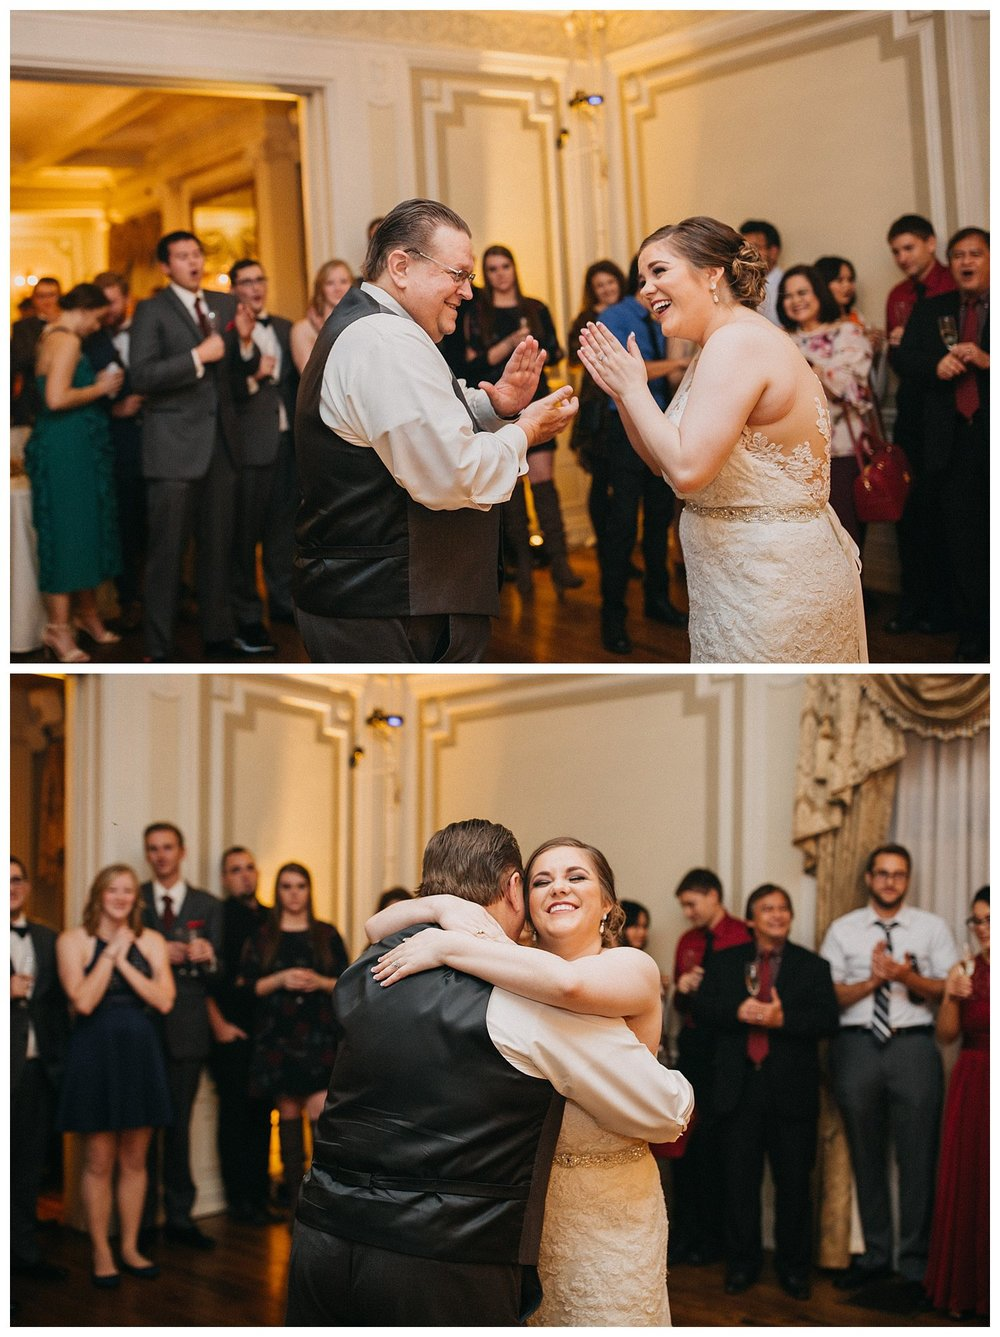 Kelsey_Diane_Photography_Loose_Mansion_Wedding_Photography_Kansas_City_Victor_Lyndsay_0168.jpg